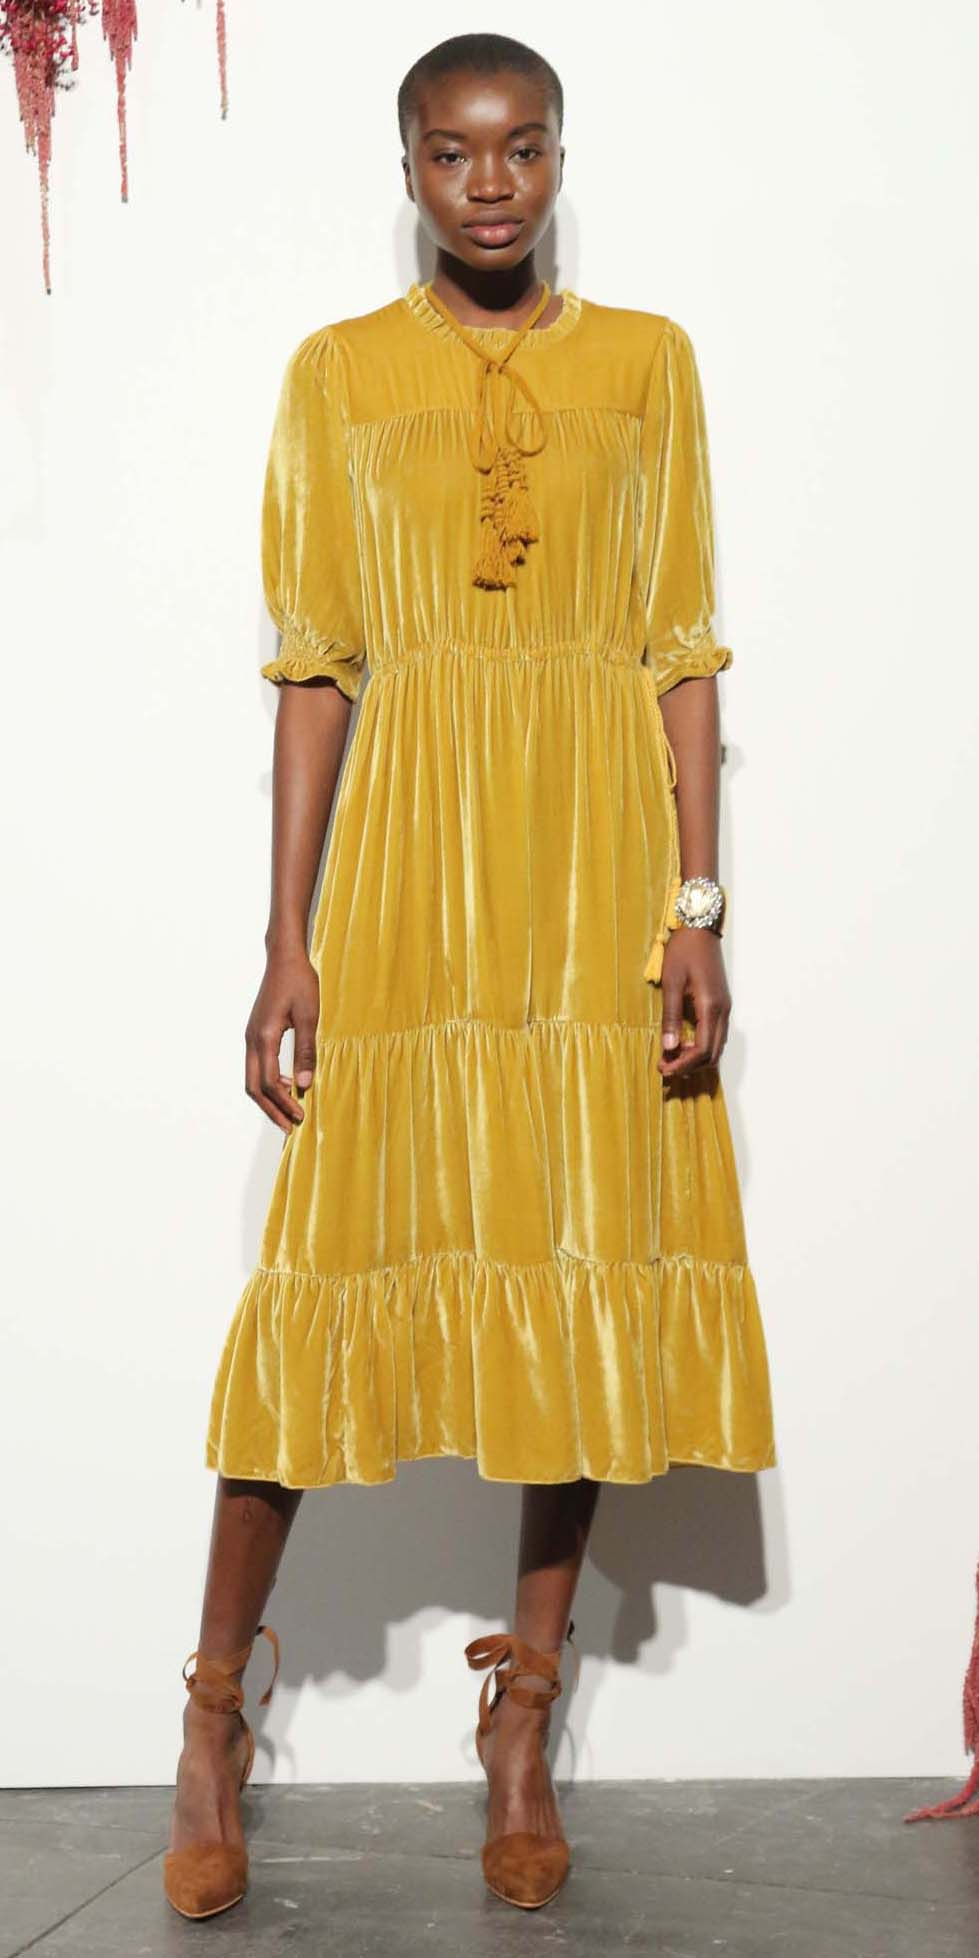 yellow-dress-peasant-midi-velvet-brun-cognac-shoe-pumps-howtowear-fashion-fall-winter-dinner.jpg